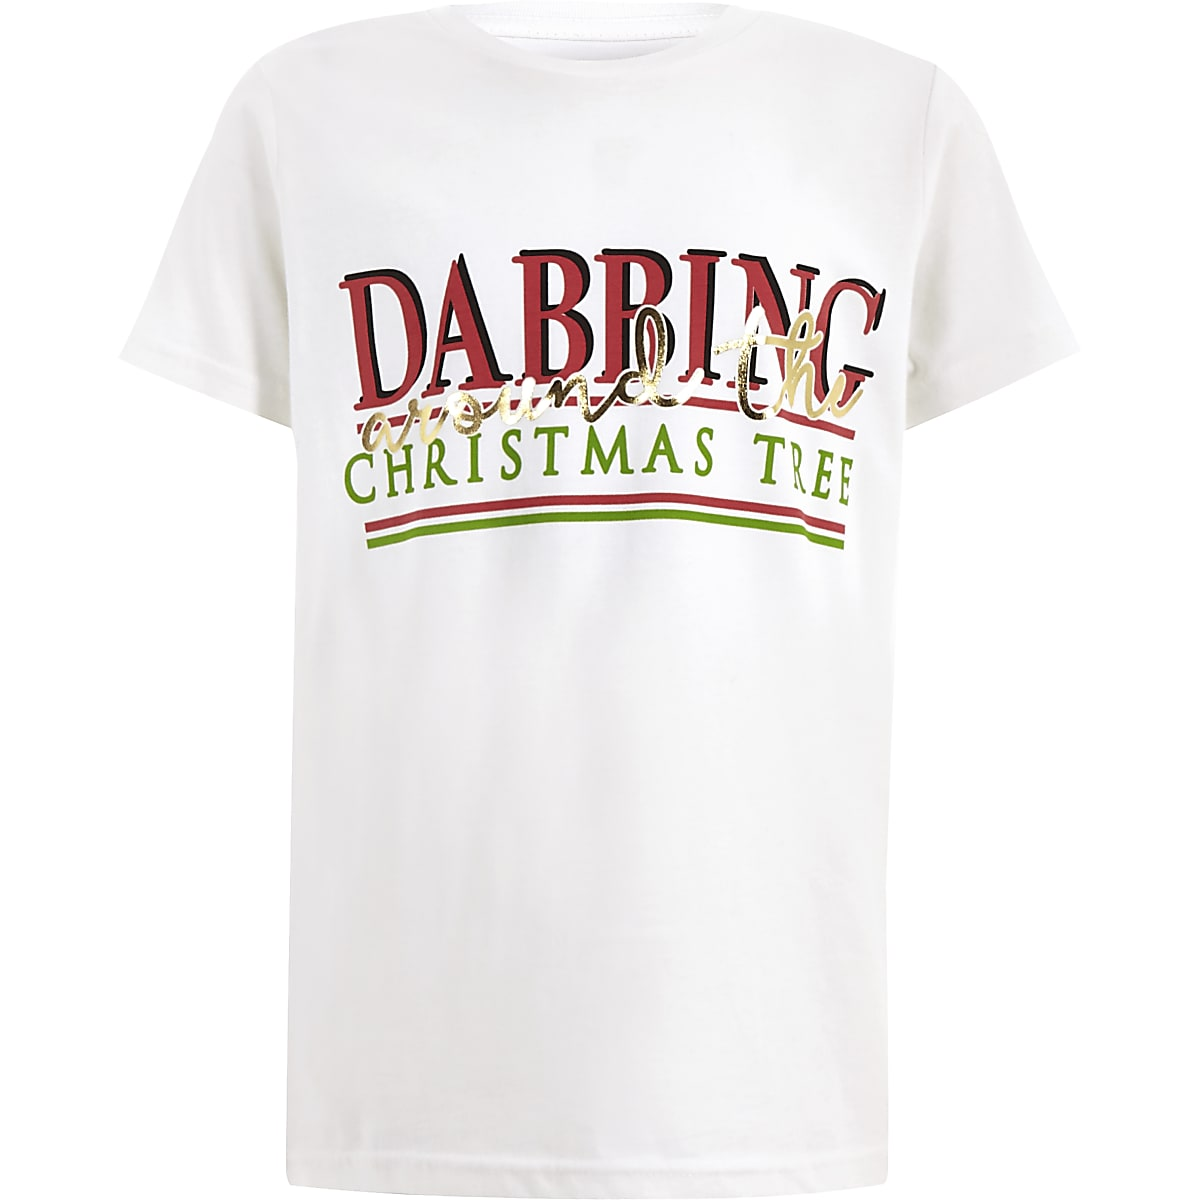 Boys white 'Dabbing' Christmas T-shirt